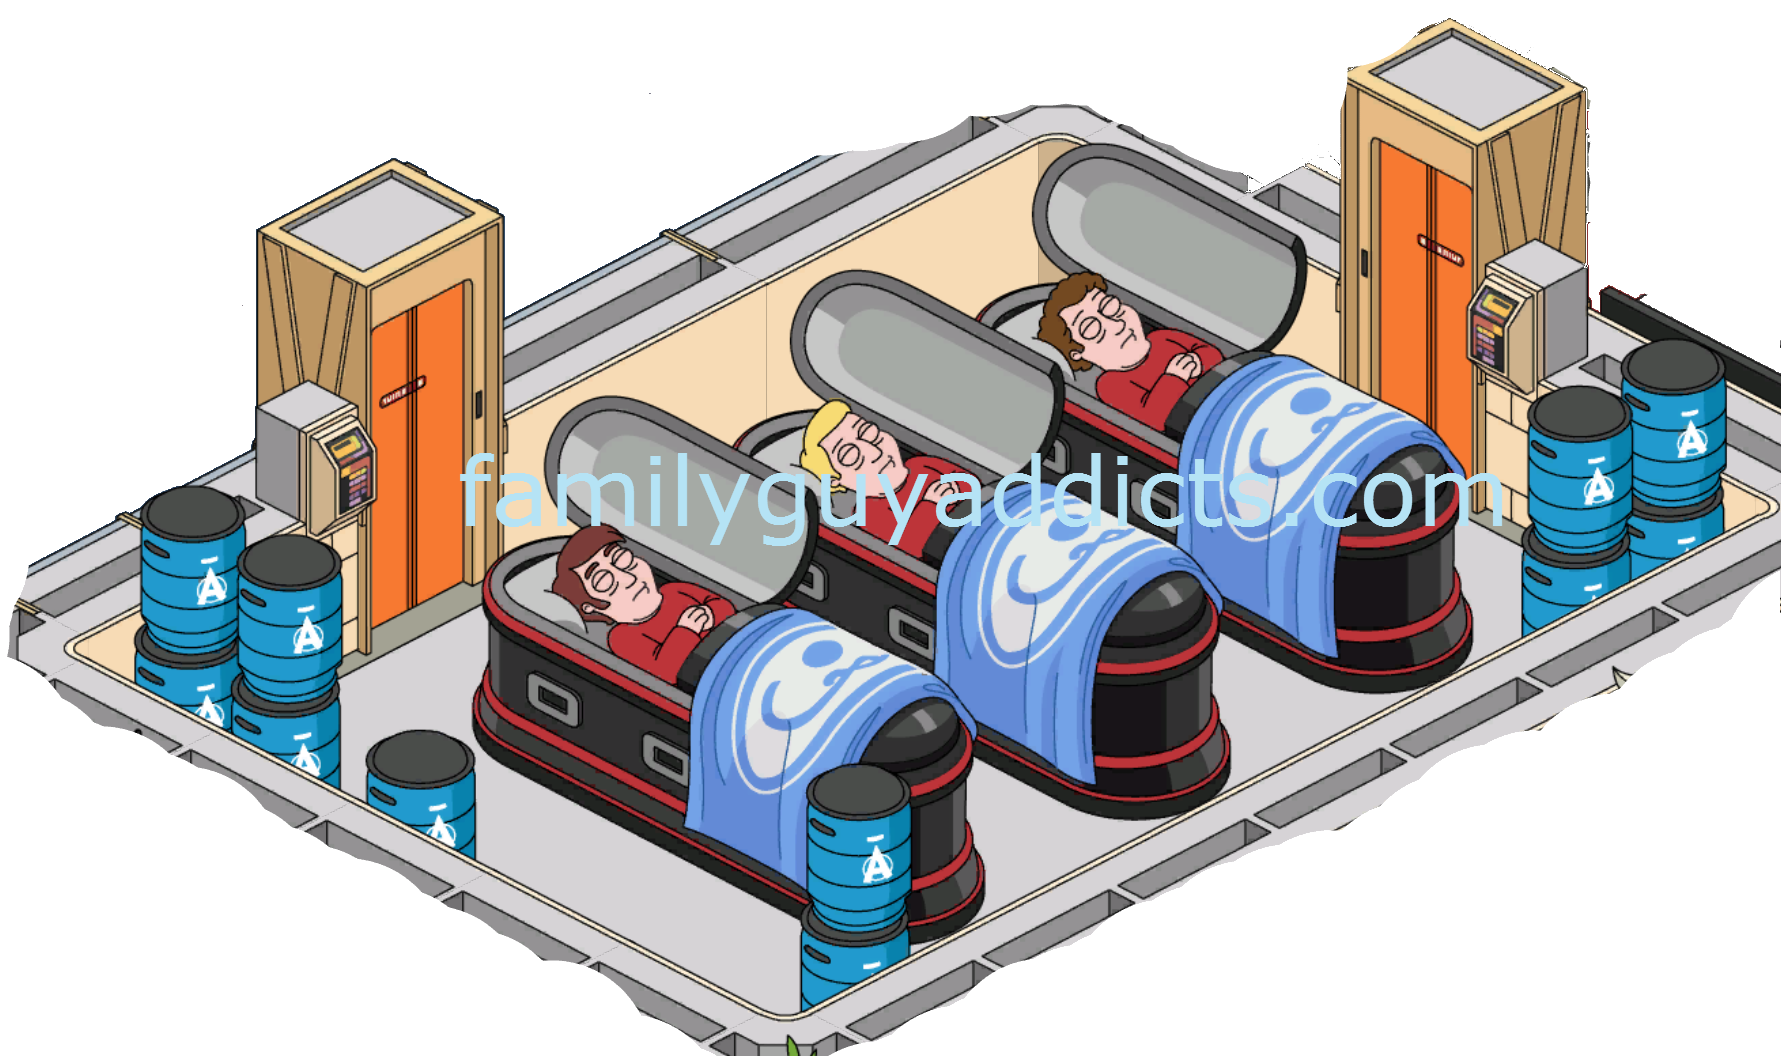 Star trek transporter clipart image free stock Star Trek Enterprise: Ten Forward Rooms | Family Guy Addicts image free stock